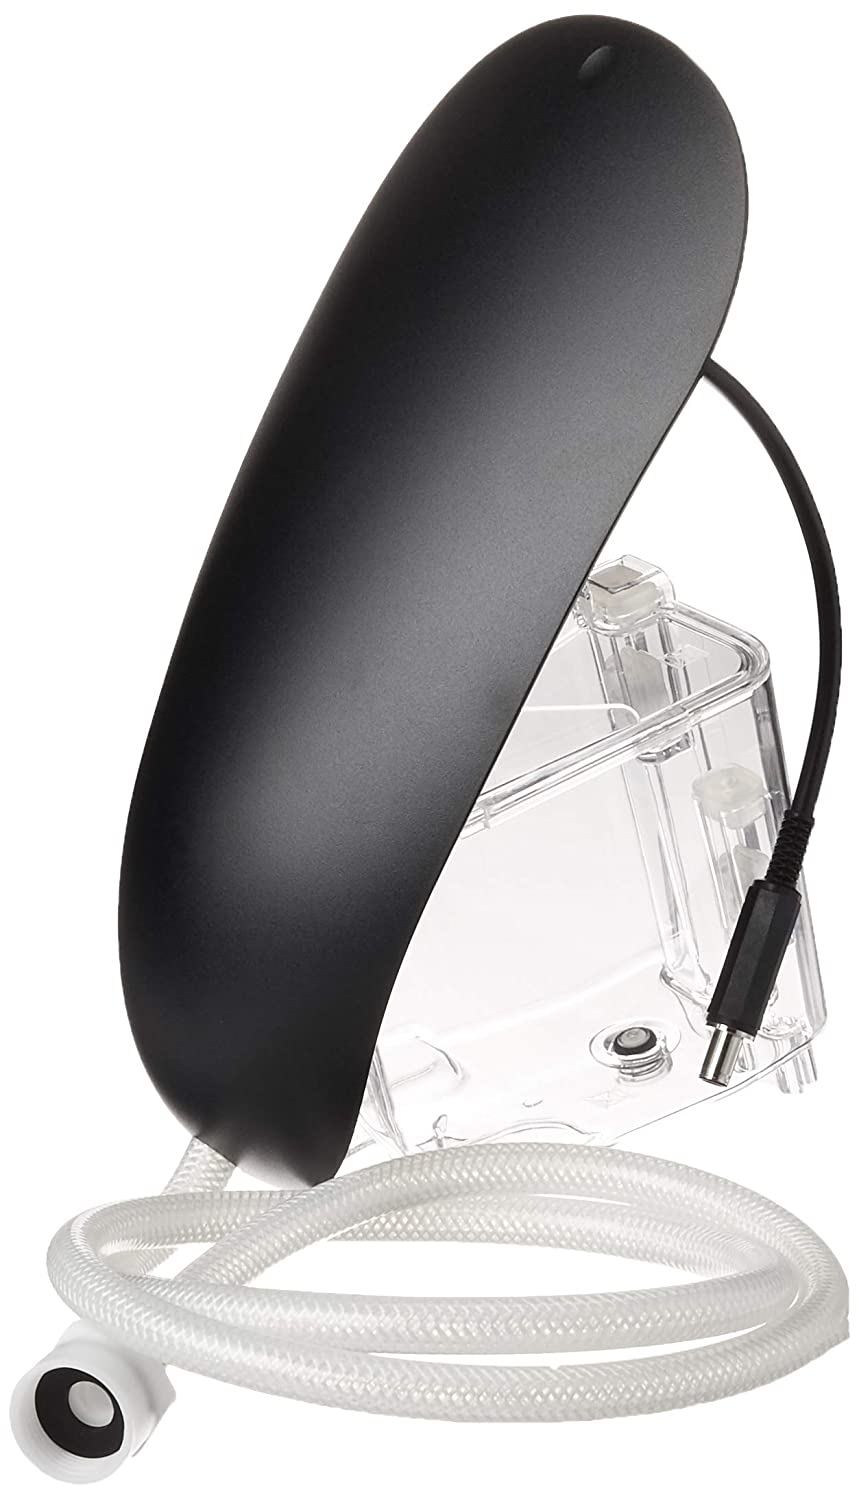 NESCAF Dolce Gusto, Majesto Plumbed Water Tank